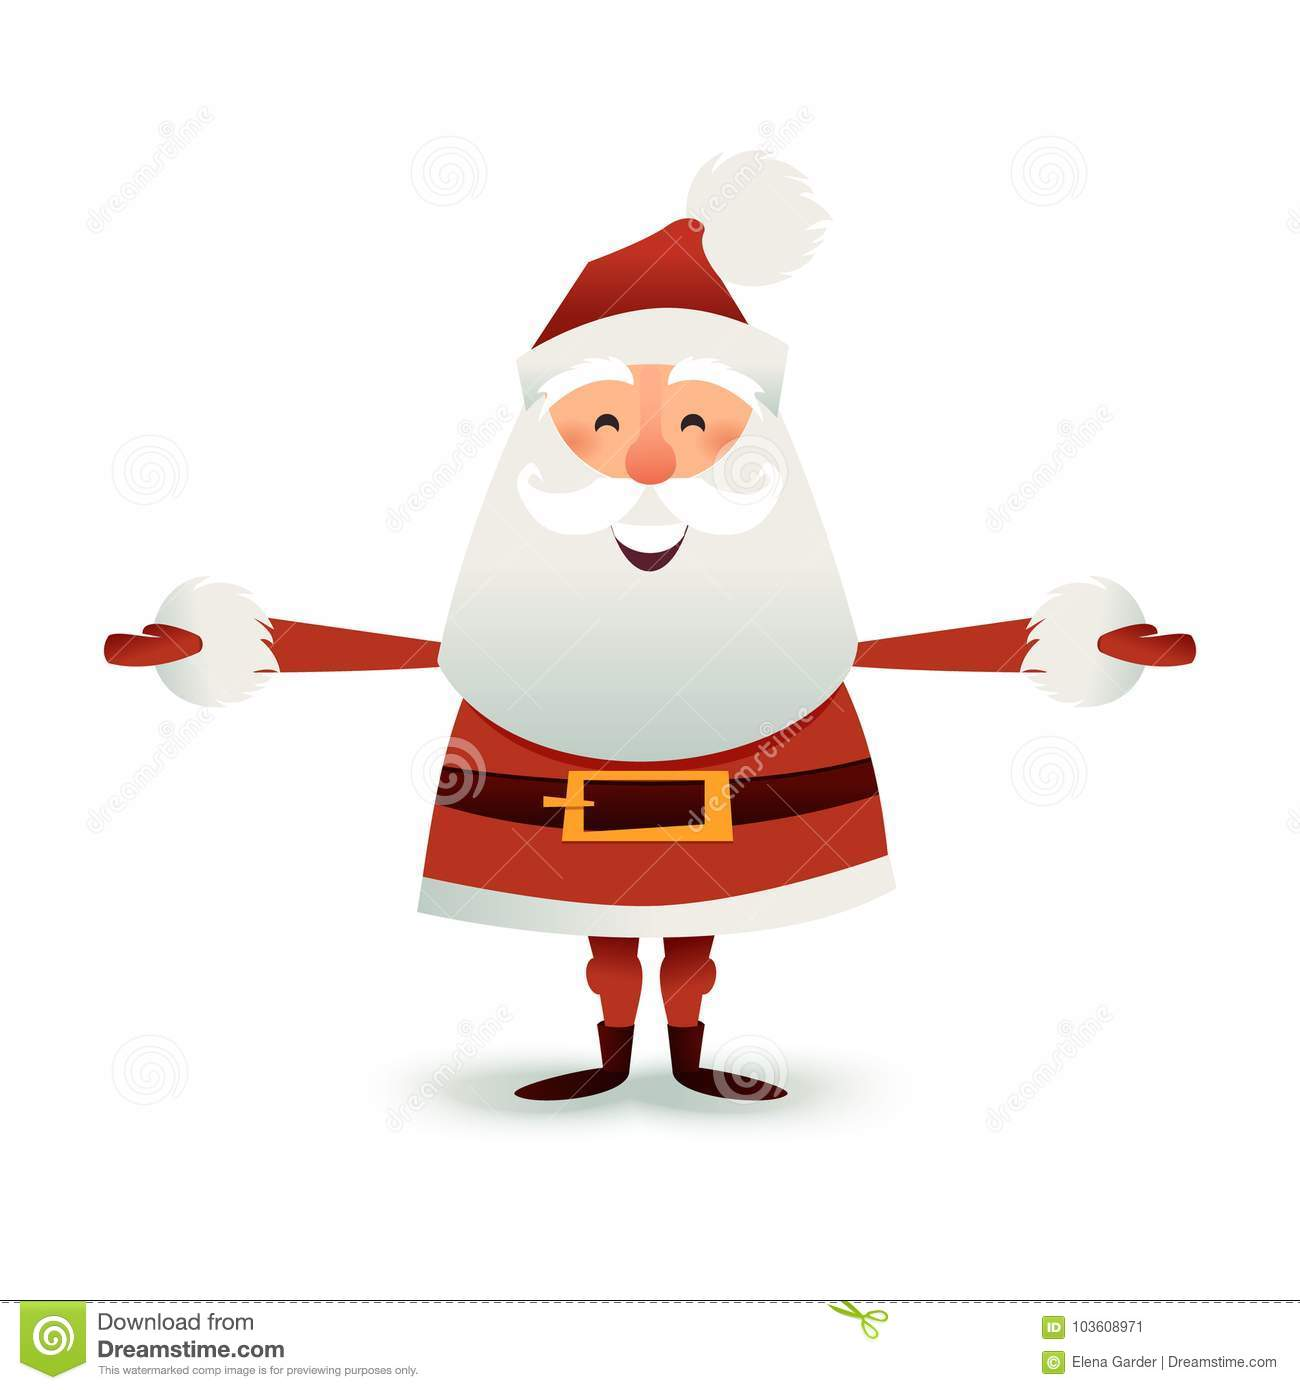 Father Christmas Cartoon Images.Santa Claus Flat Illustration Happy Christmas Father